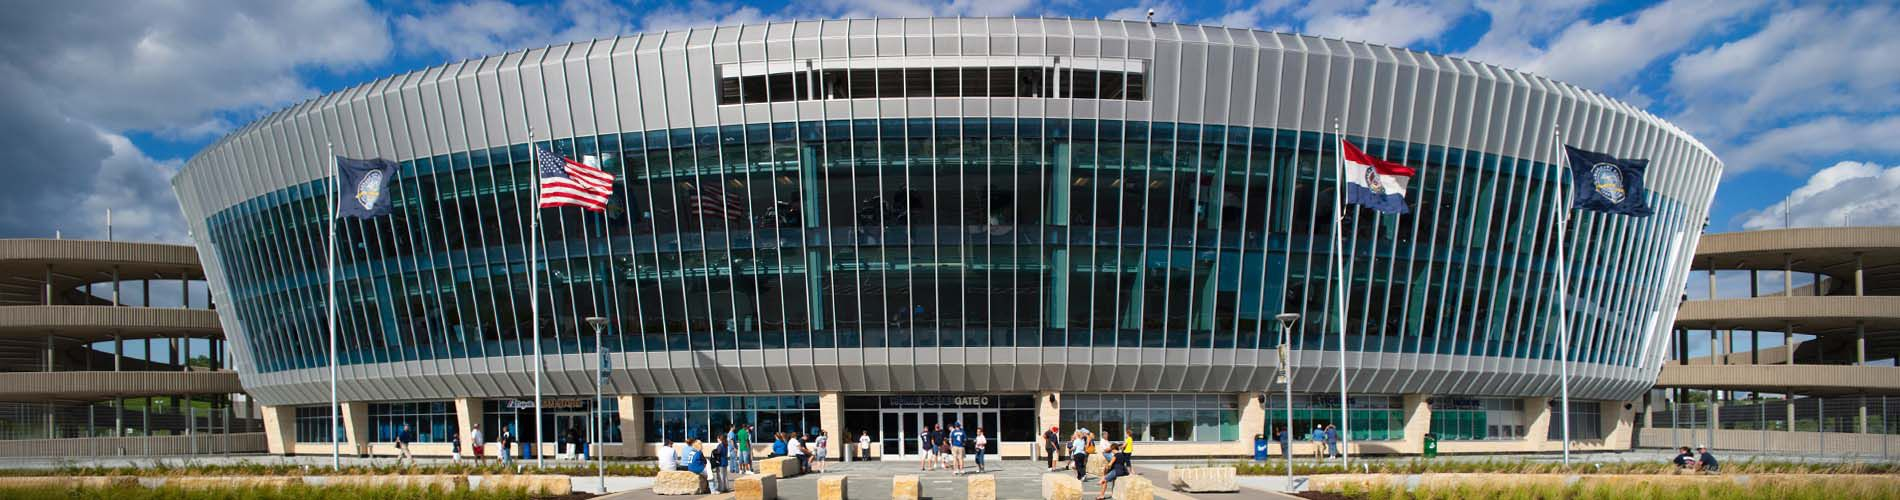 Kauffman Stadium in Kansas City - Case Study | McNICHOLS®